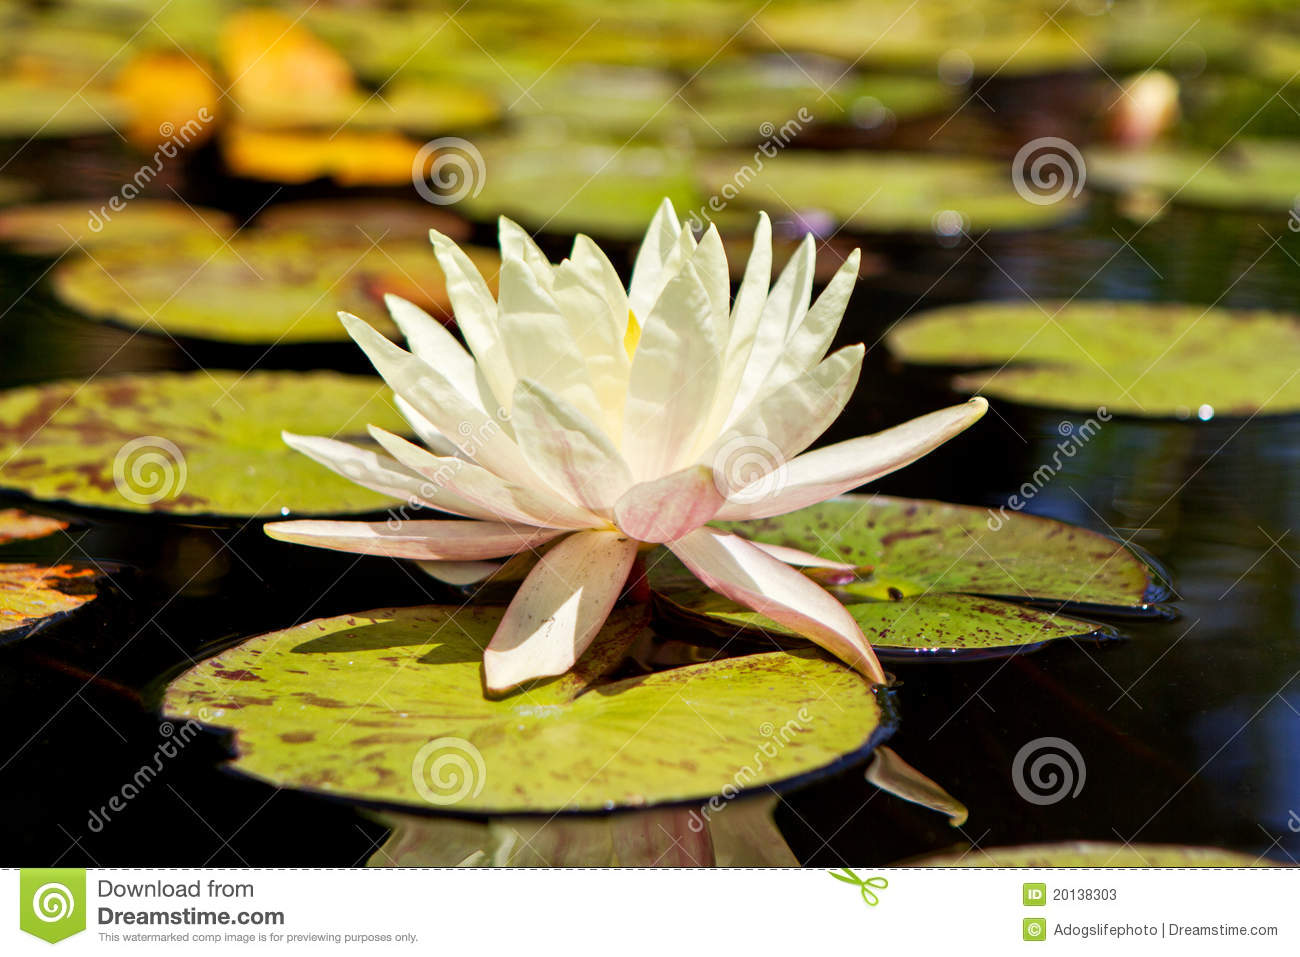 White Lotus Flower In Lily Pond Stock Image Image Of Plant